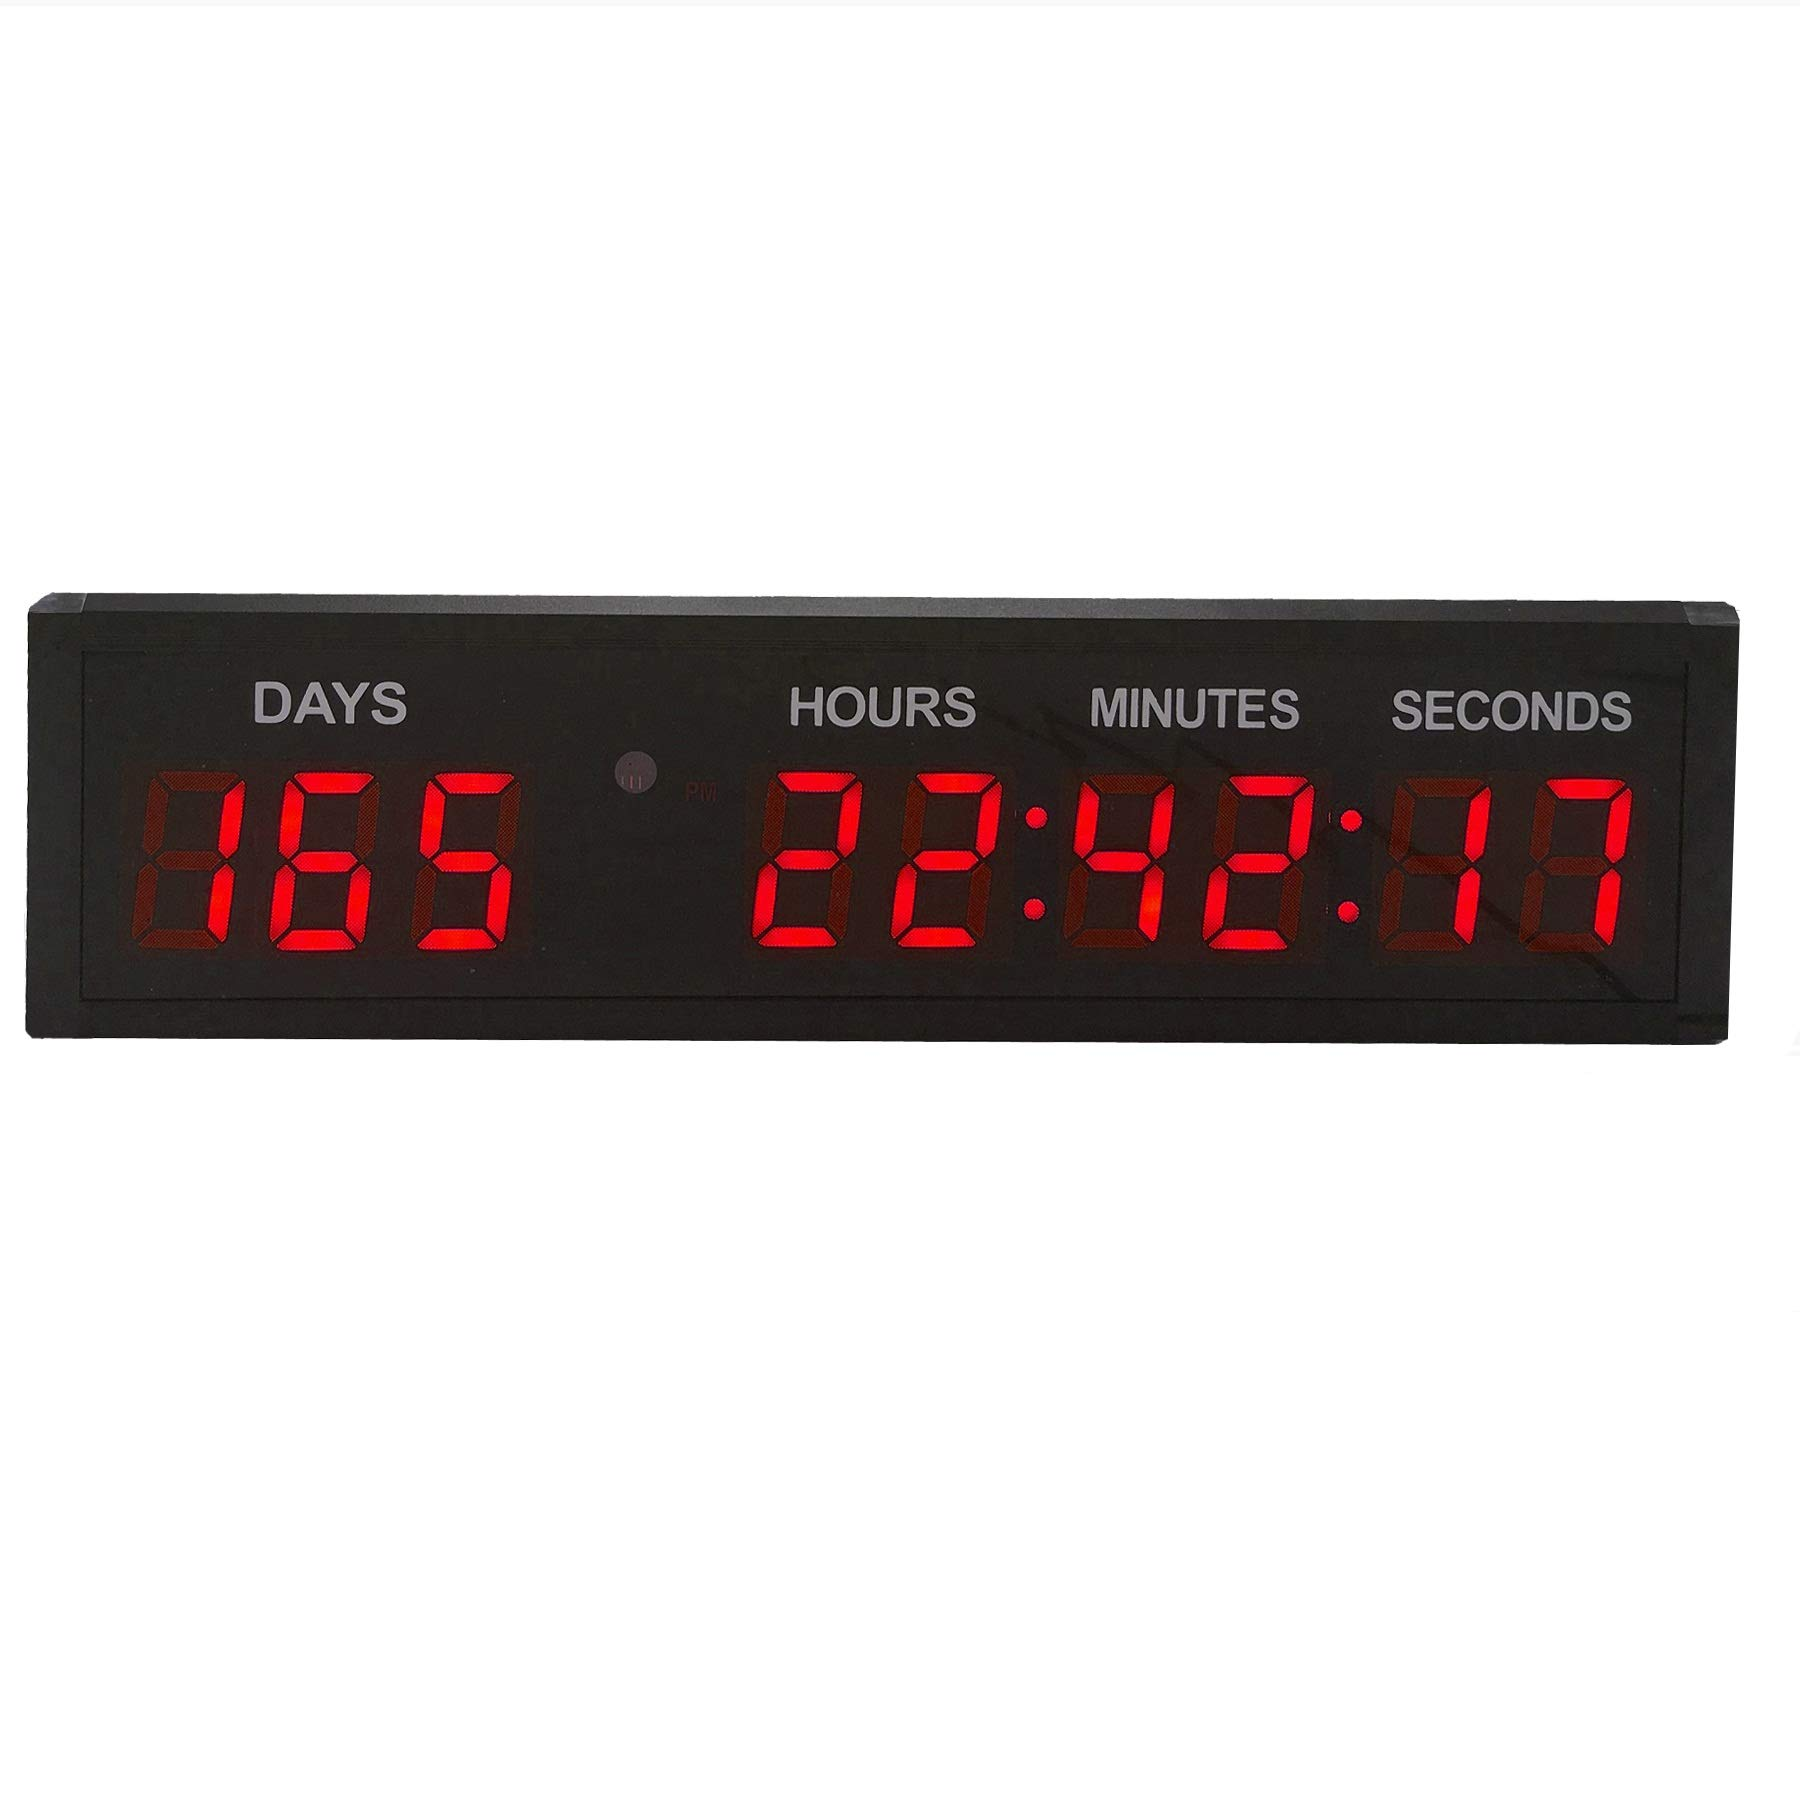 N// A 2.3 Inch 6 Digital Led Countdown Timer Stopwatch Wall Clock for Gym Fitness Home